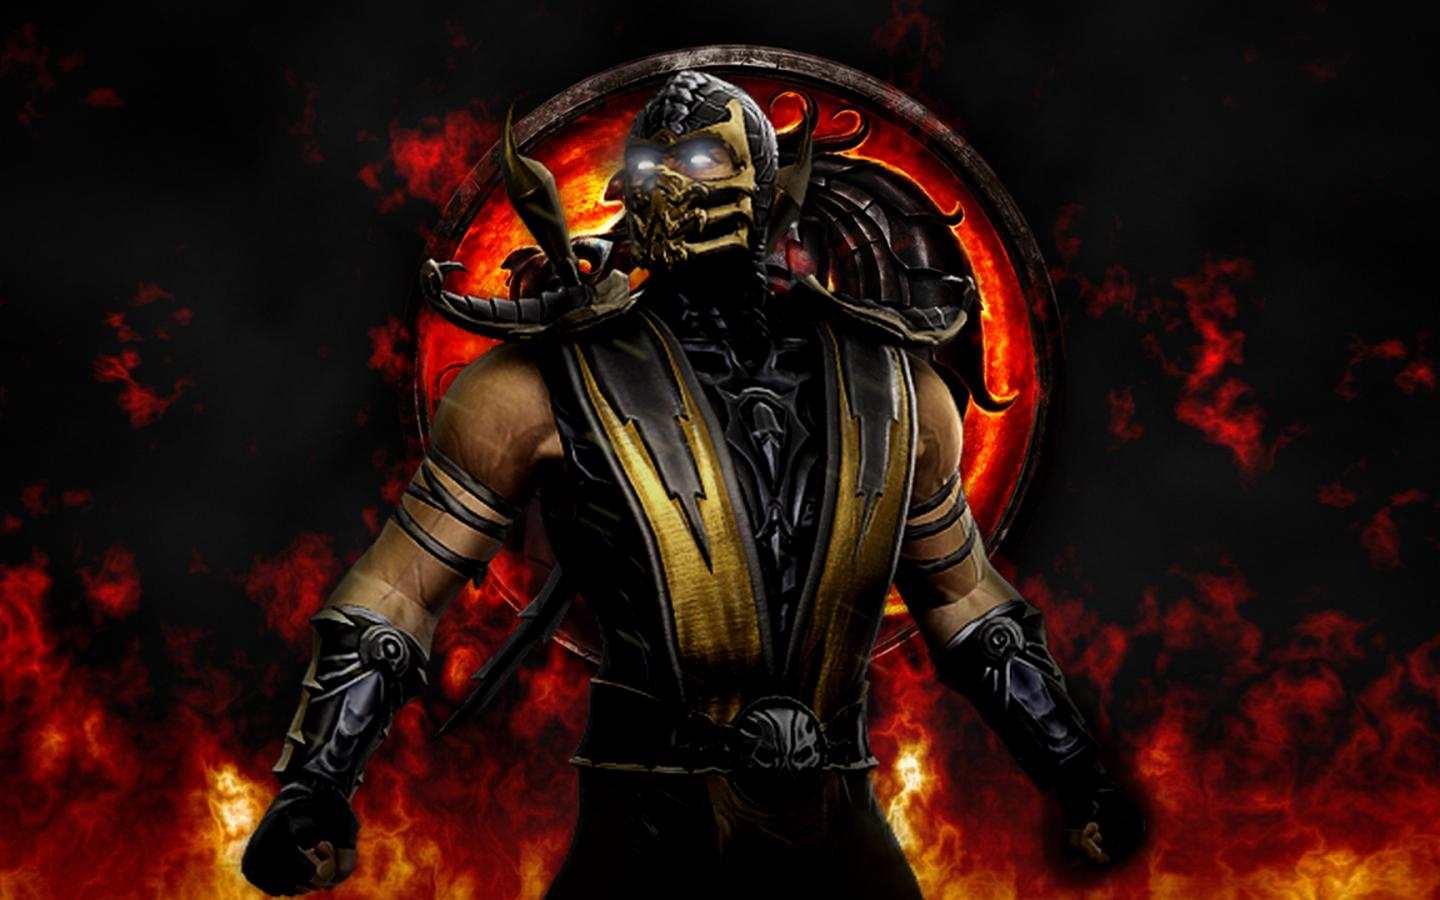 Images of scorpion from mortal kombat for wallpaper hd - Mortal kombat scorpion wallpaper ...